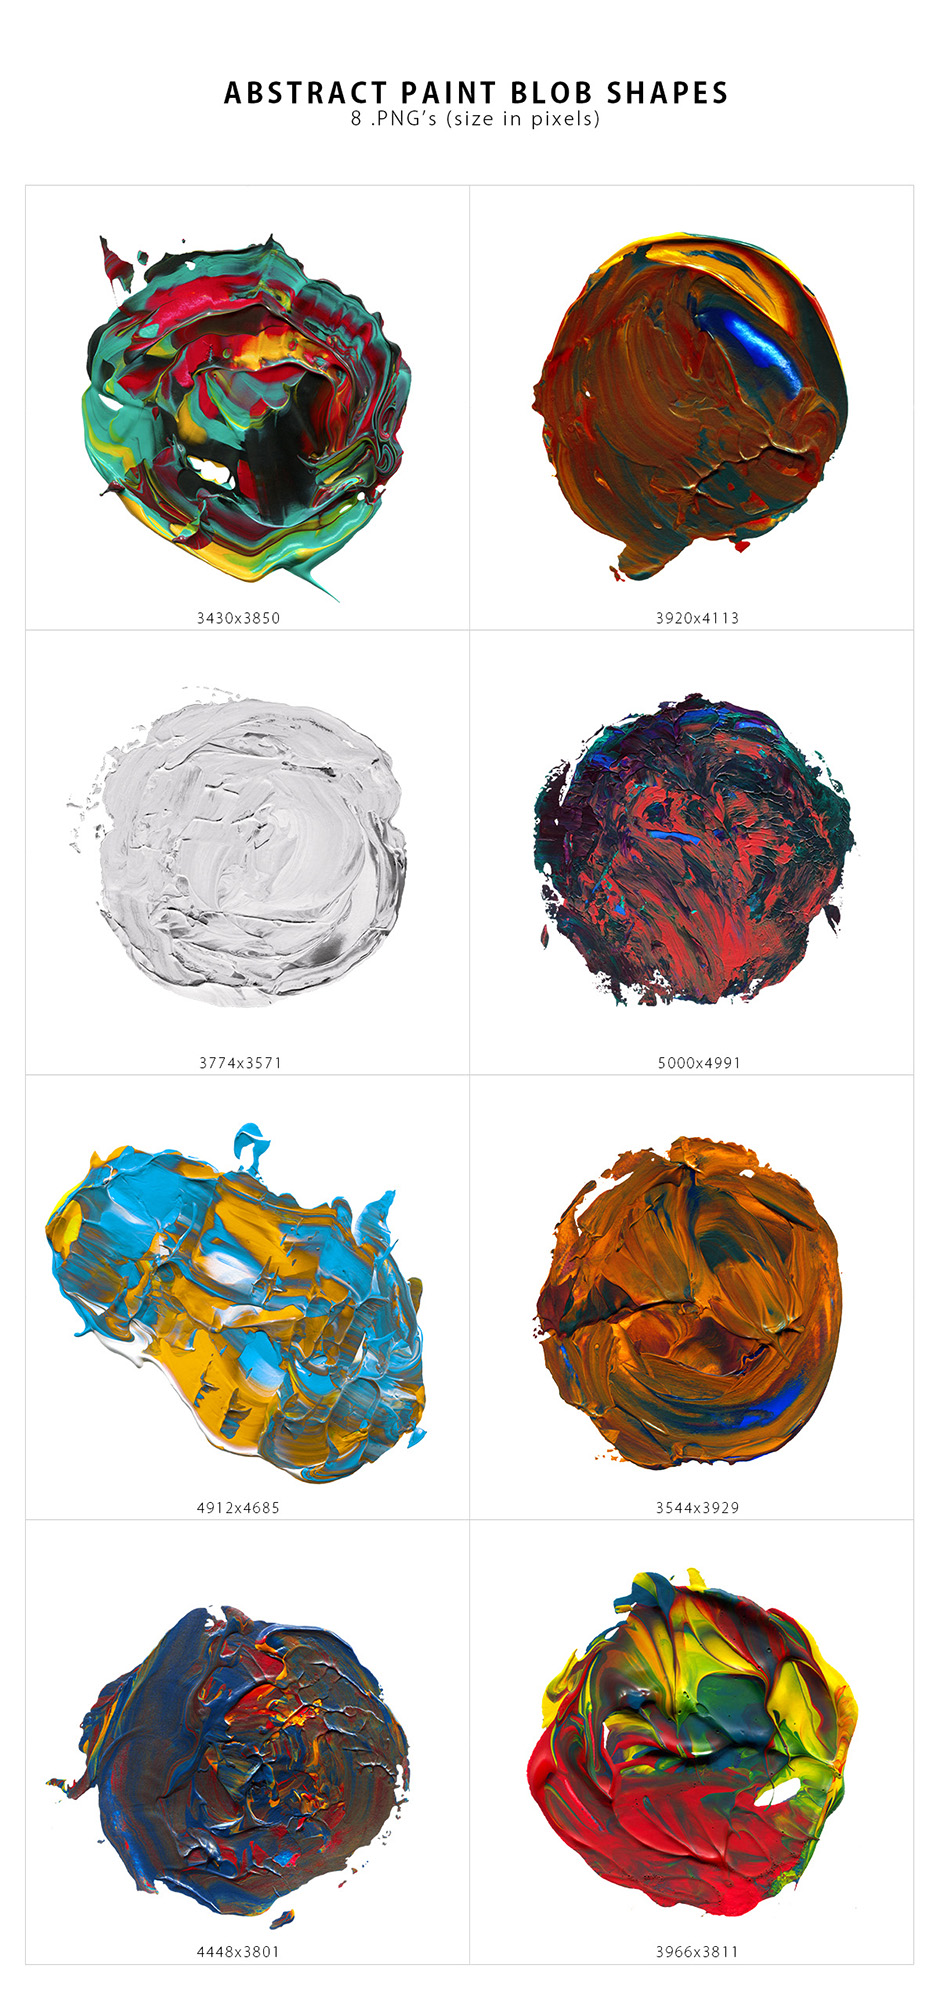 Abstract Paint Shapes prev2